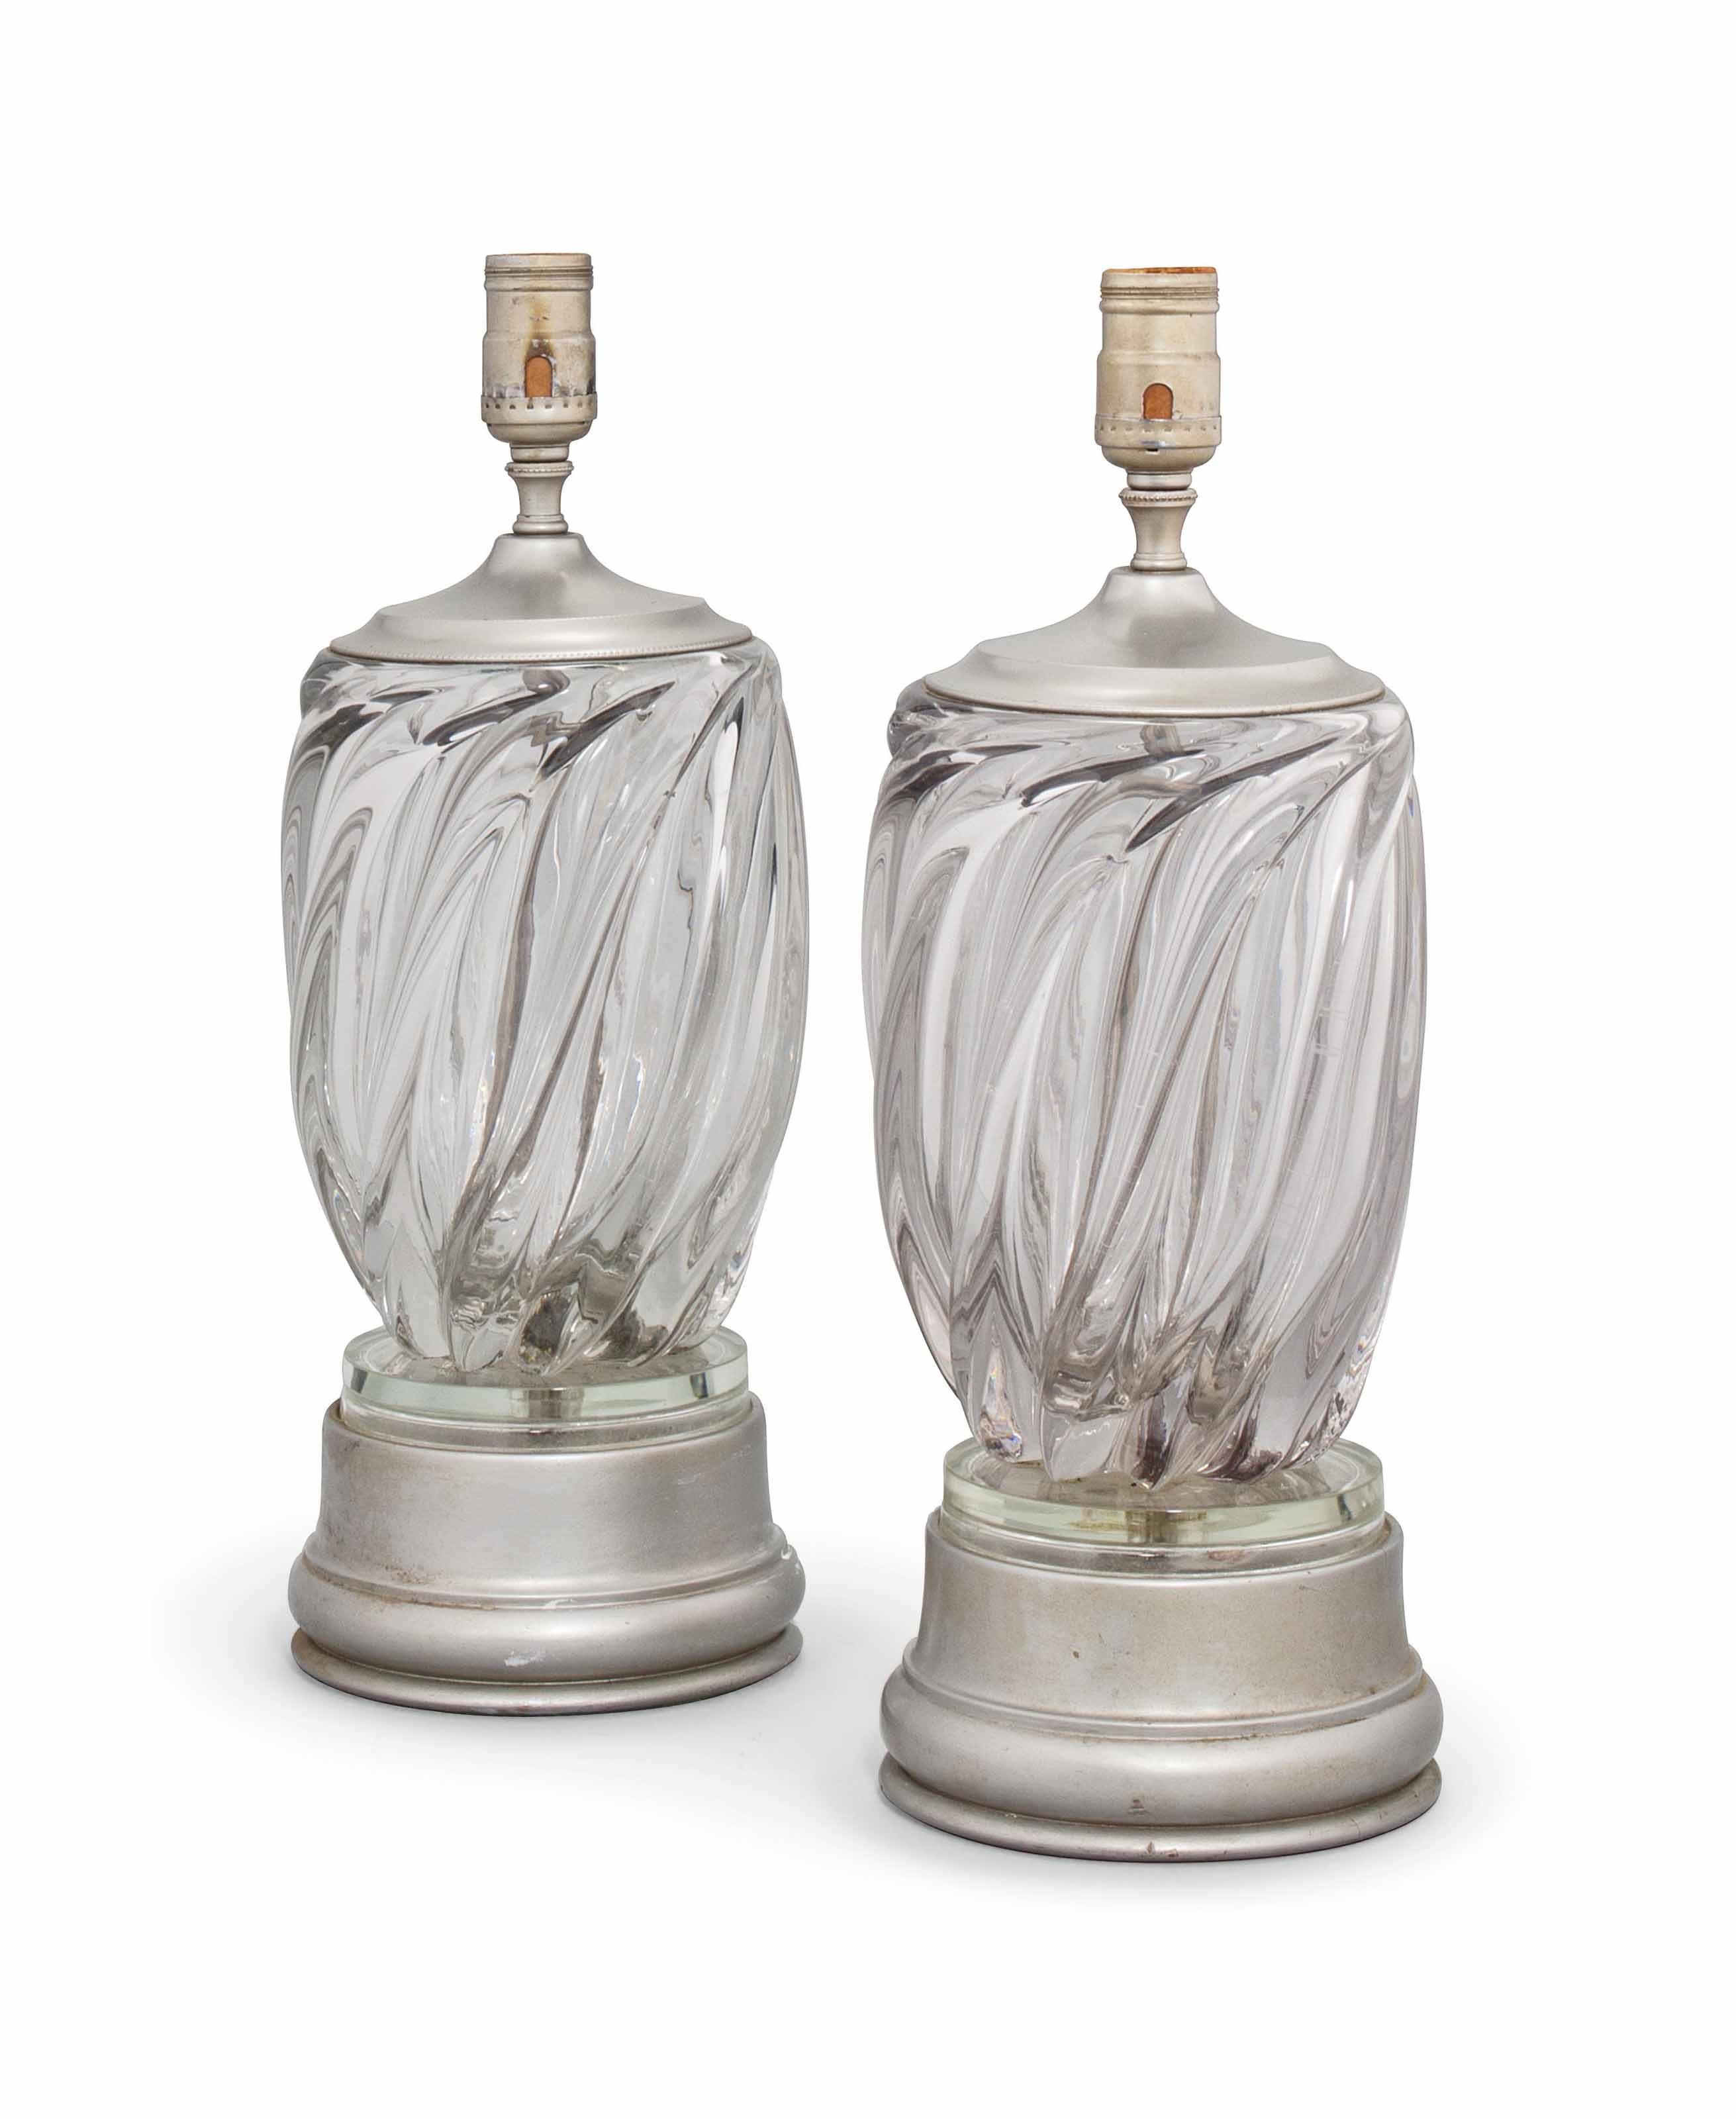 A PAIR OF MURANO GLASS TABLE LAMPS